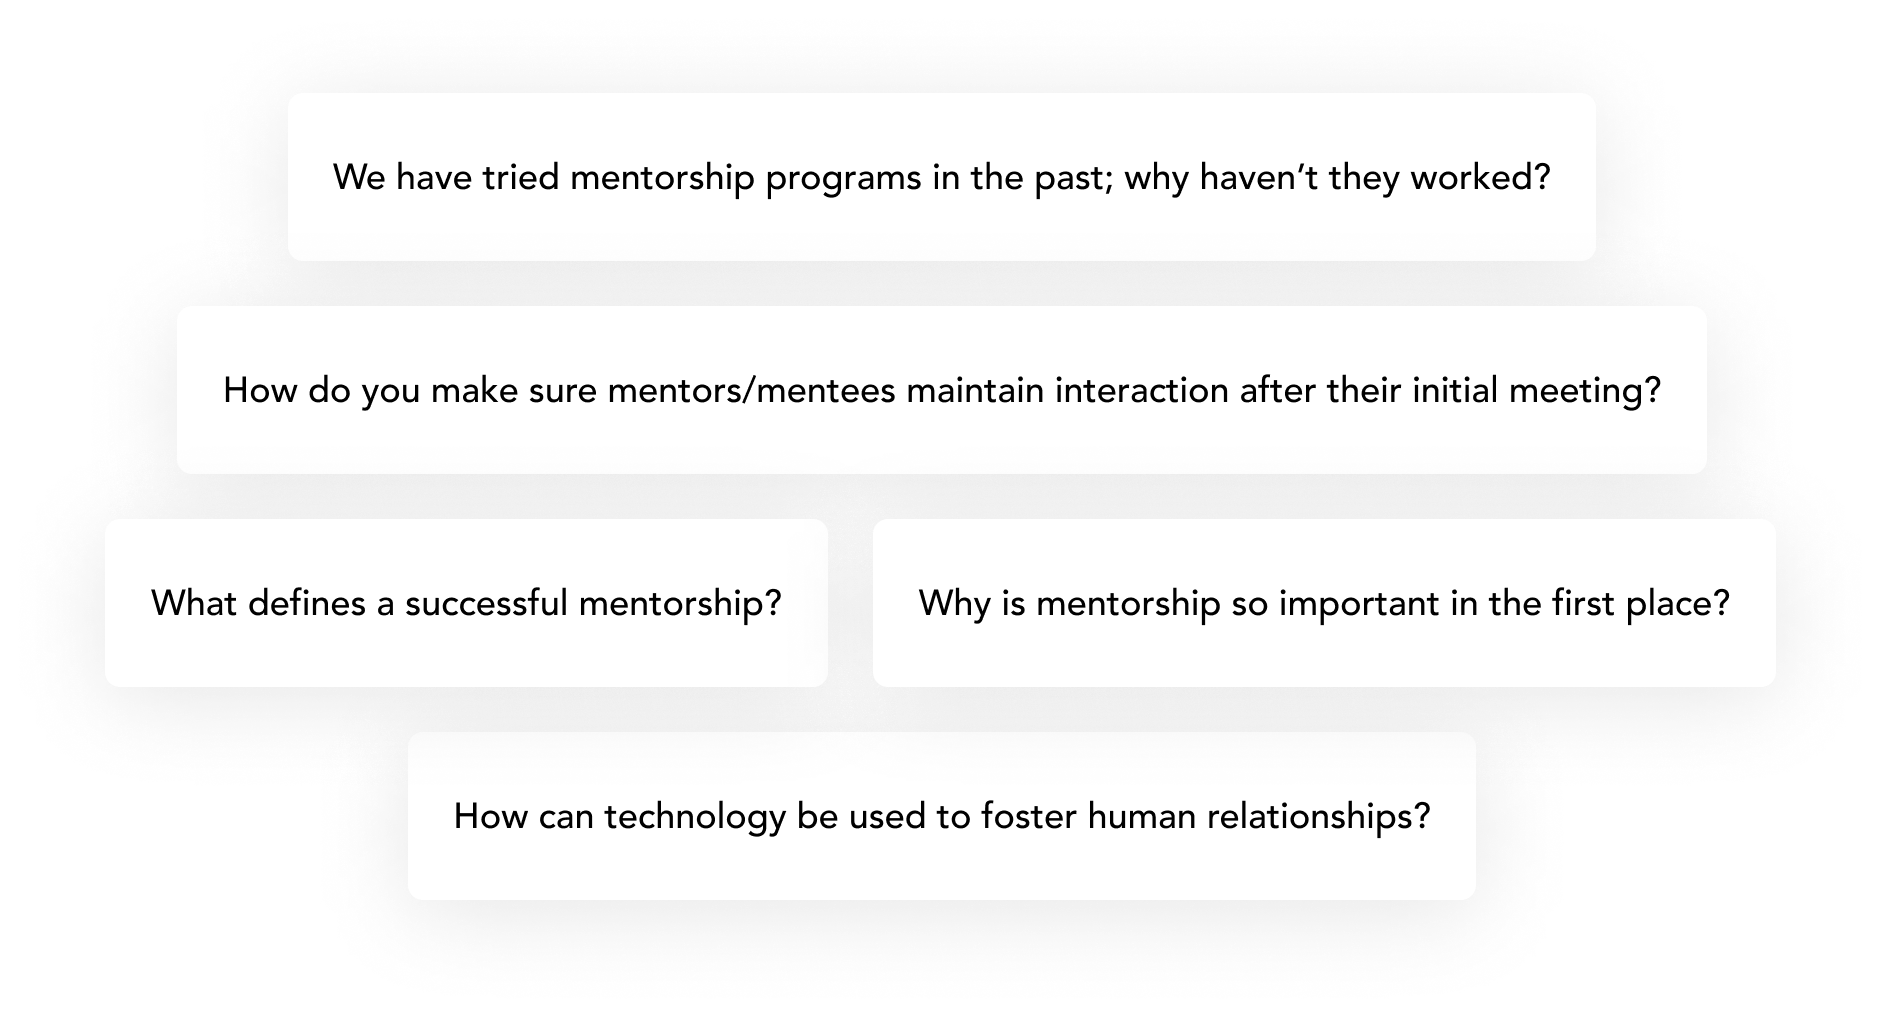 We have tried mentorship programs in the past; why haven't they worked? How do you make sure mentors/mentees maintain interaction after their initial meeting? What defines a successful mentorship? Why is mentorship so important in the first place? How can technology be used to foster human relationships?